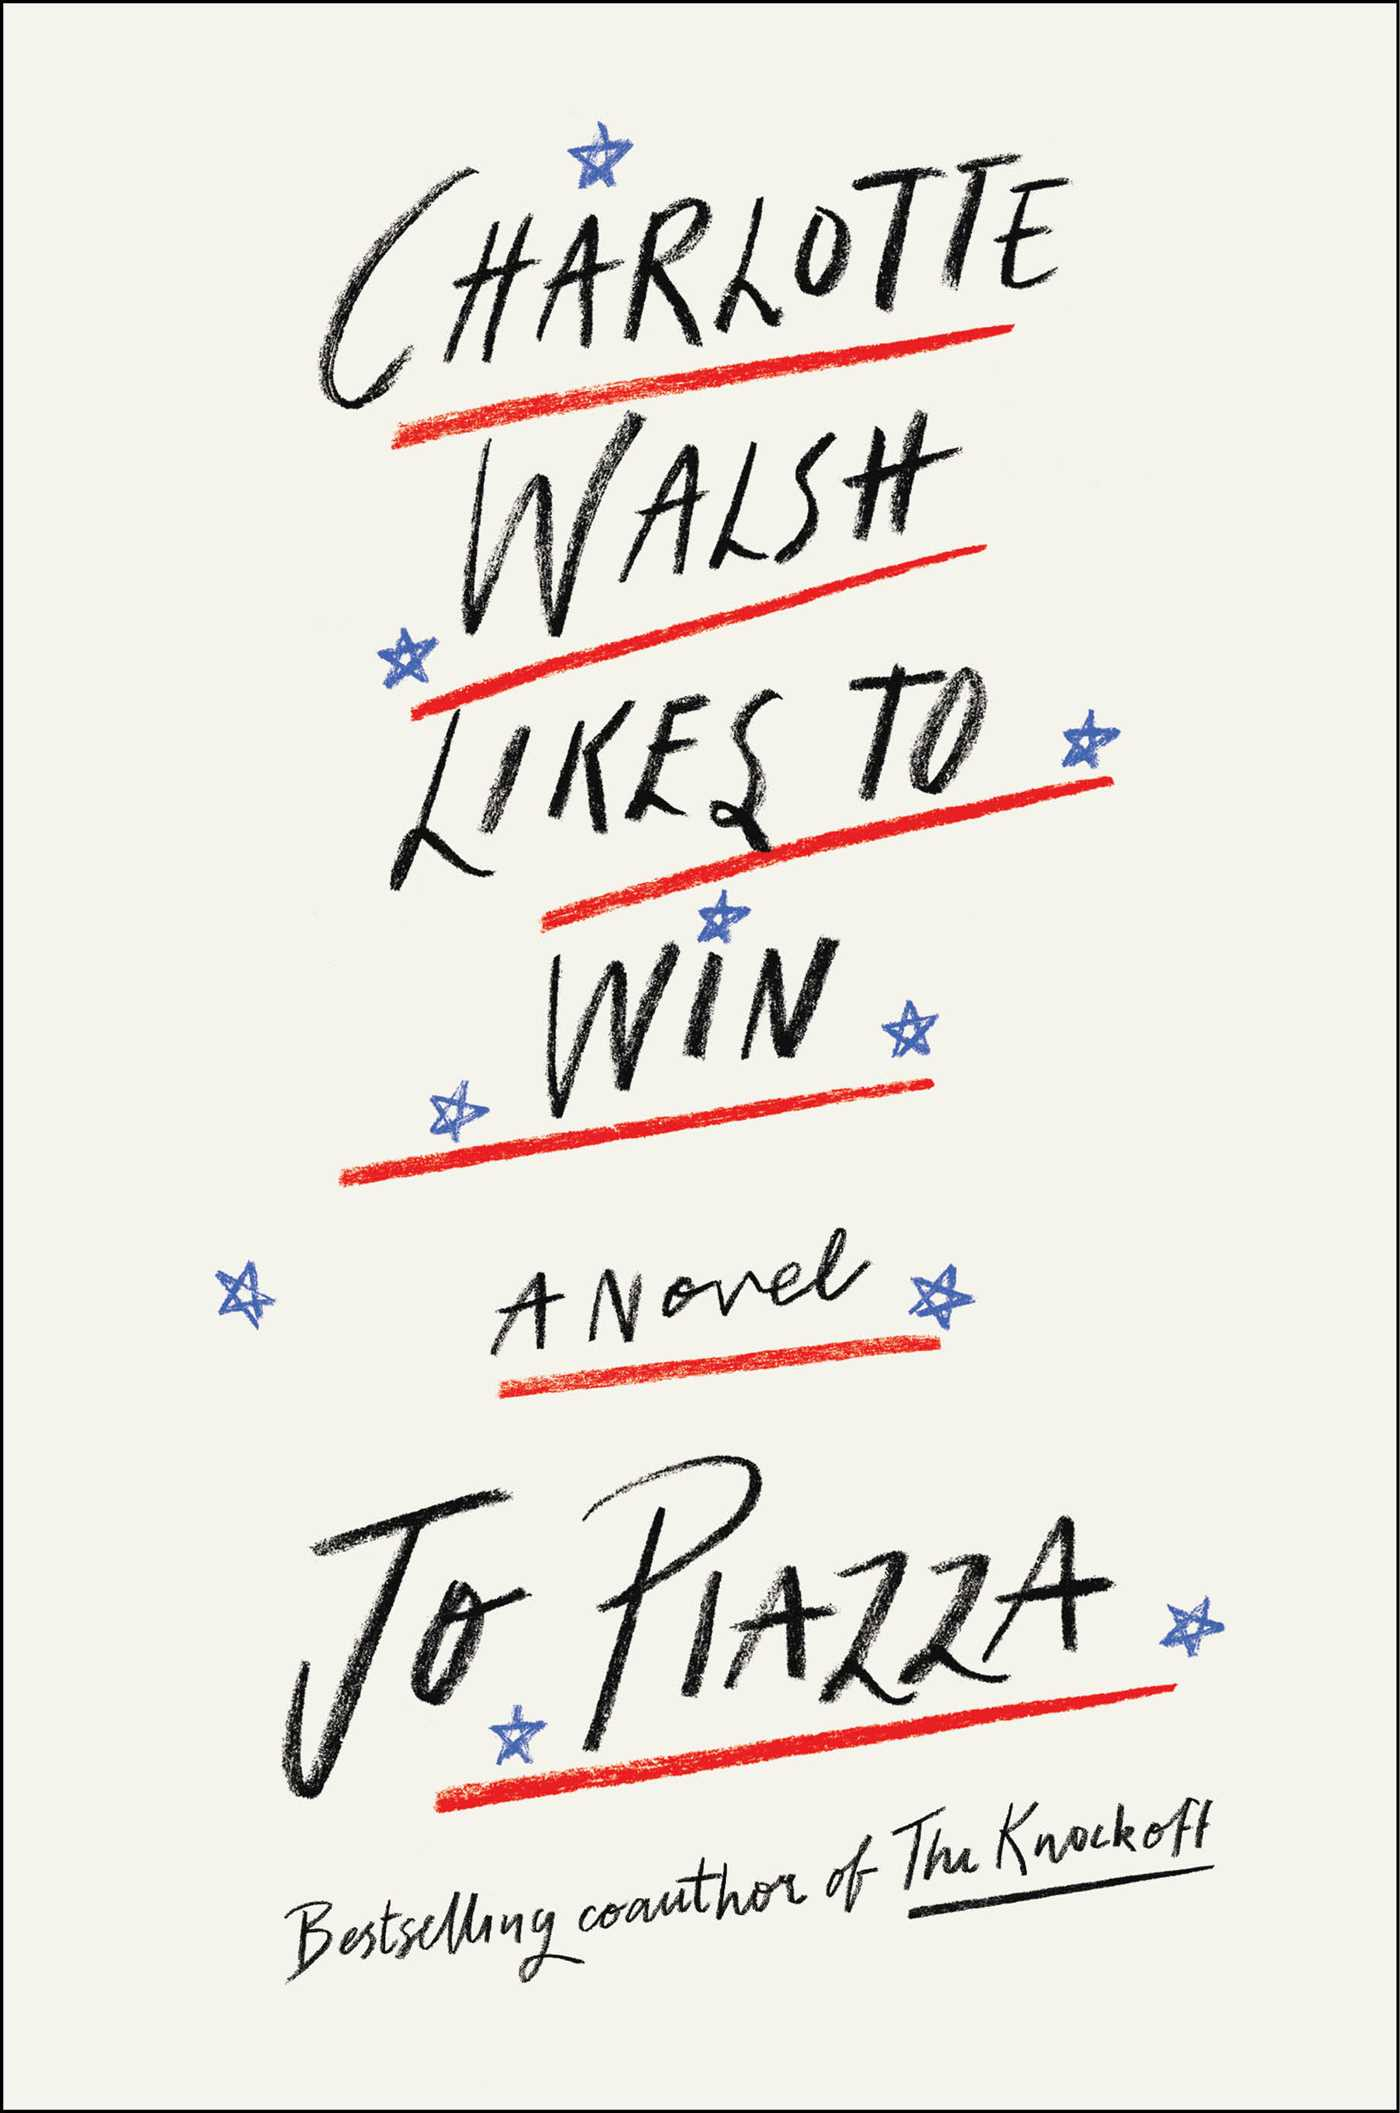 The cover of the book Charlotte Walsh Likes to Win